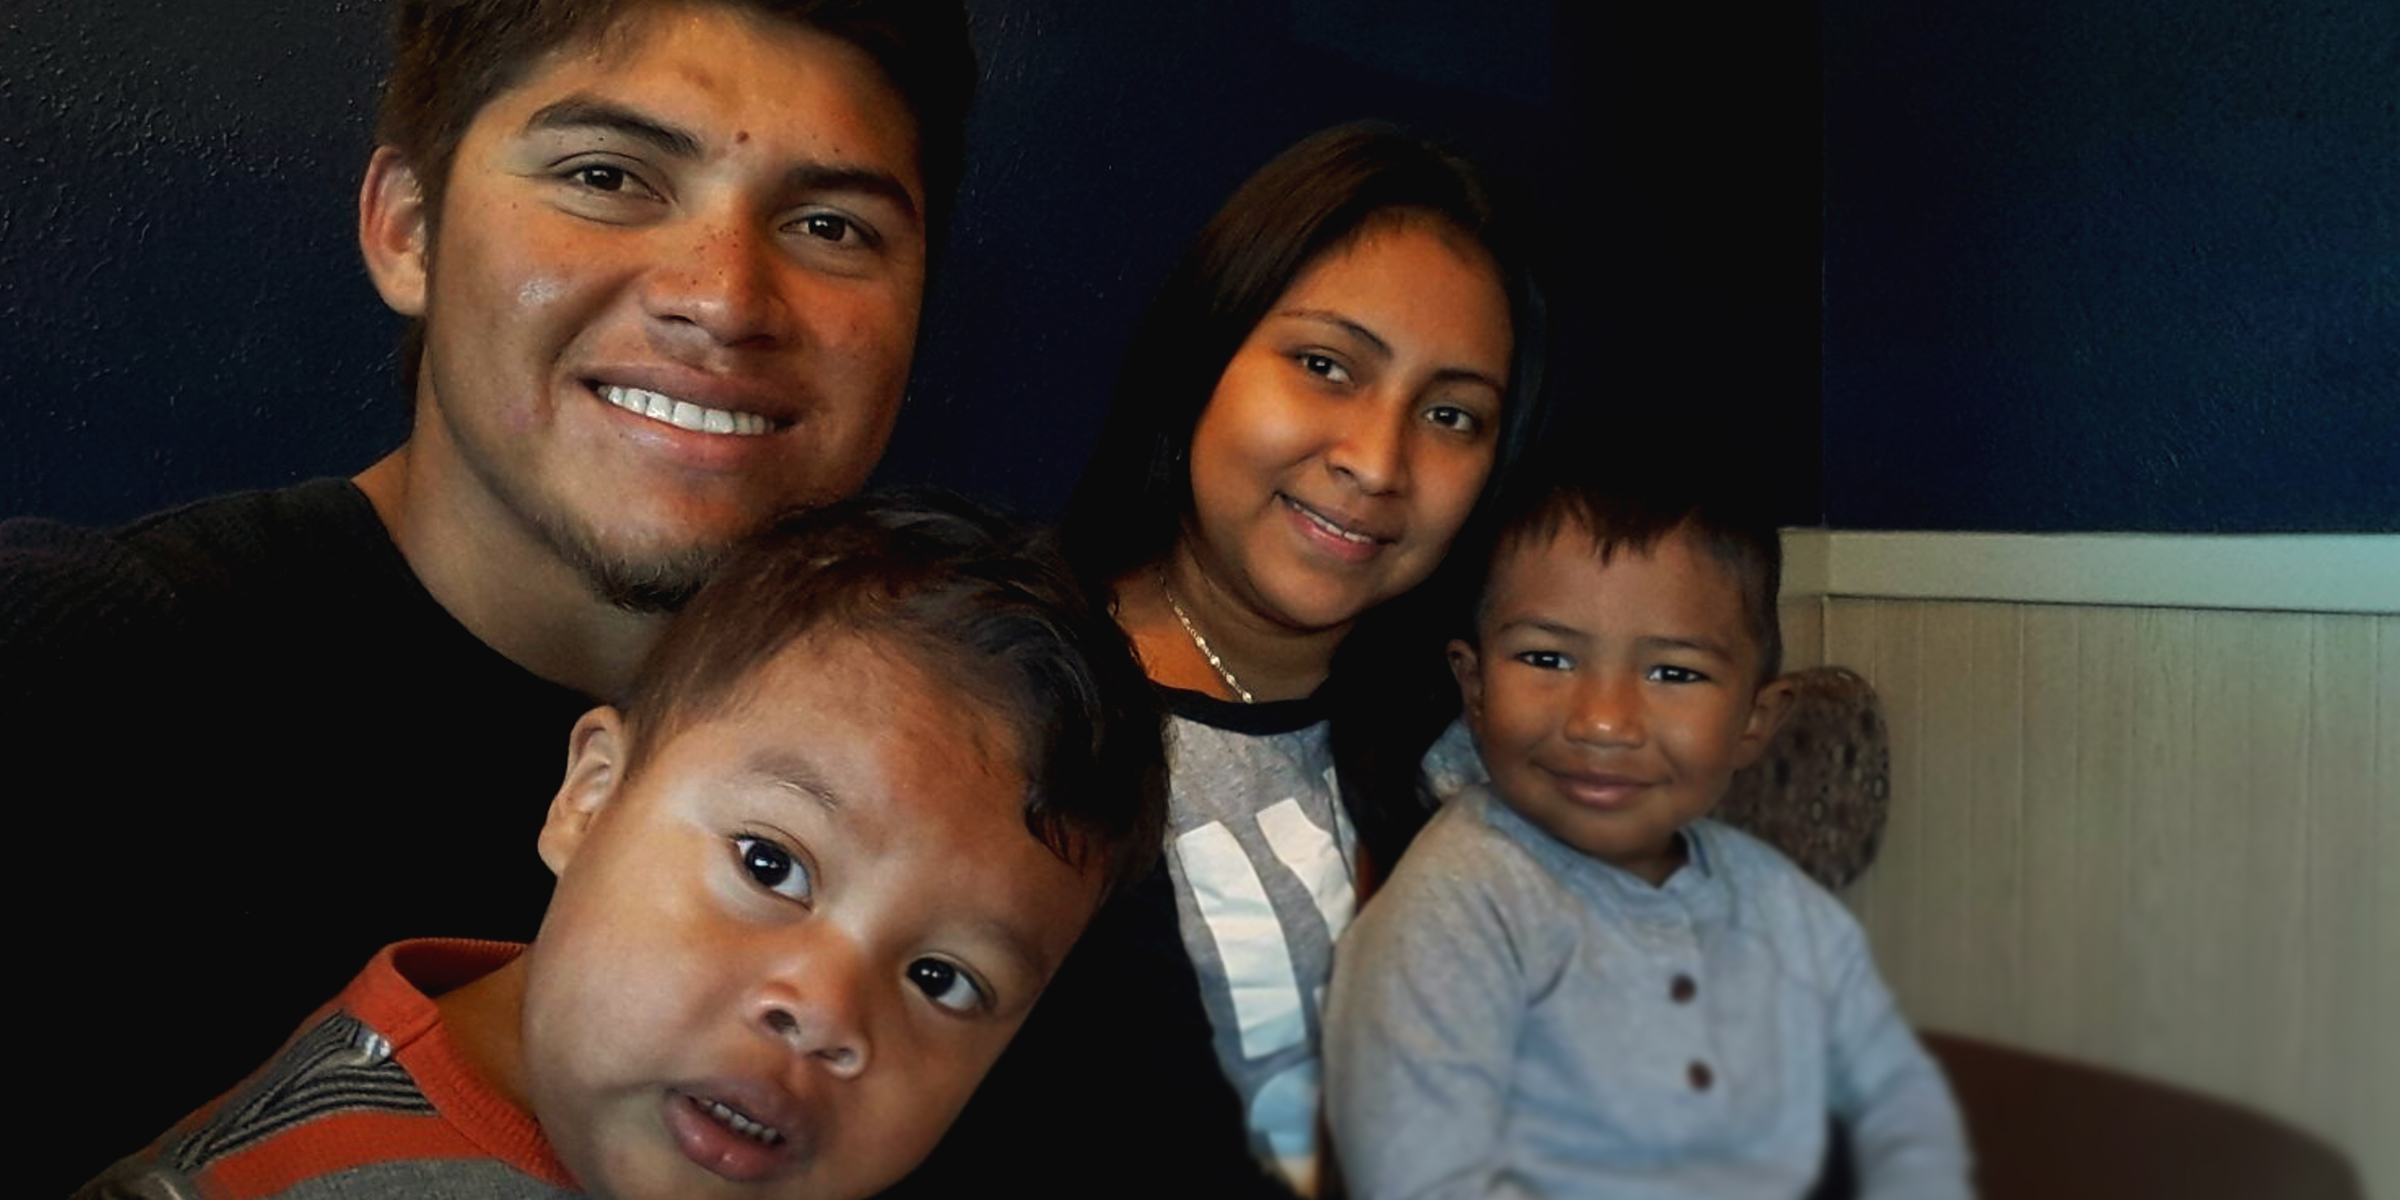 Luis Diaz with his girlfriend Kenia, his son Gael (left) and her son Noah (right).